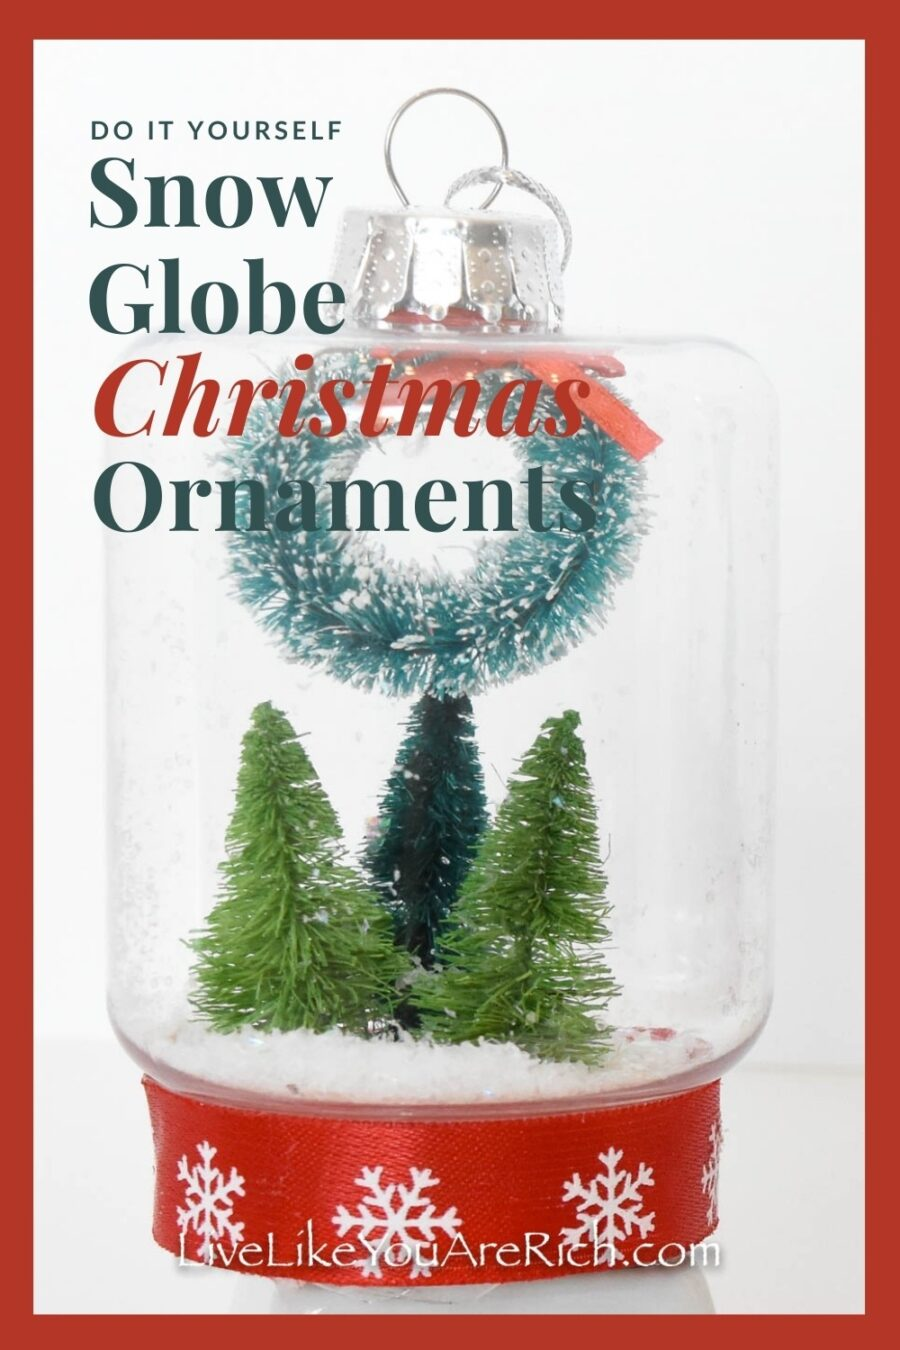 These DIY Snow Globe Christmas Ornaments were only about $3.00 each to make. They were super fun to put together and only took a few minutes each. I love snow globes. They are so whimsical and nostalgic. These are a bit of a twist on the standard snow globe, they are not filled with water and they are also Christmas tree ornaments.